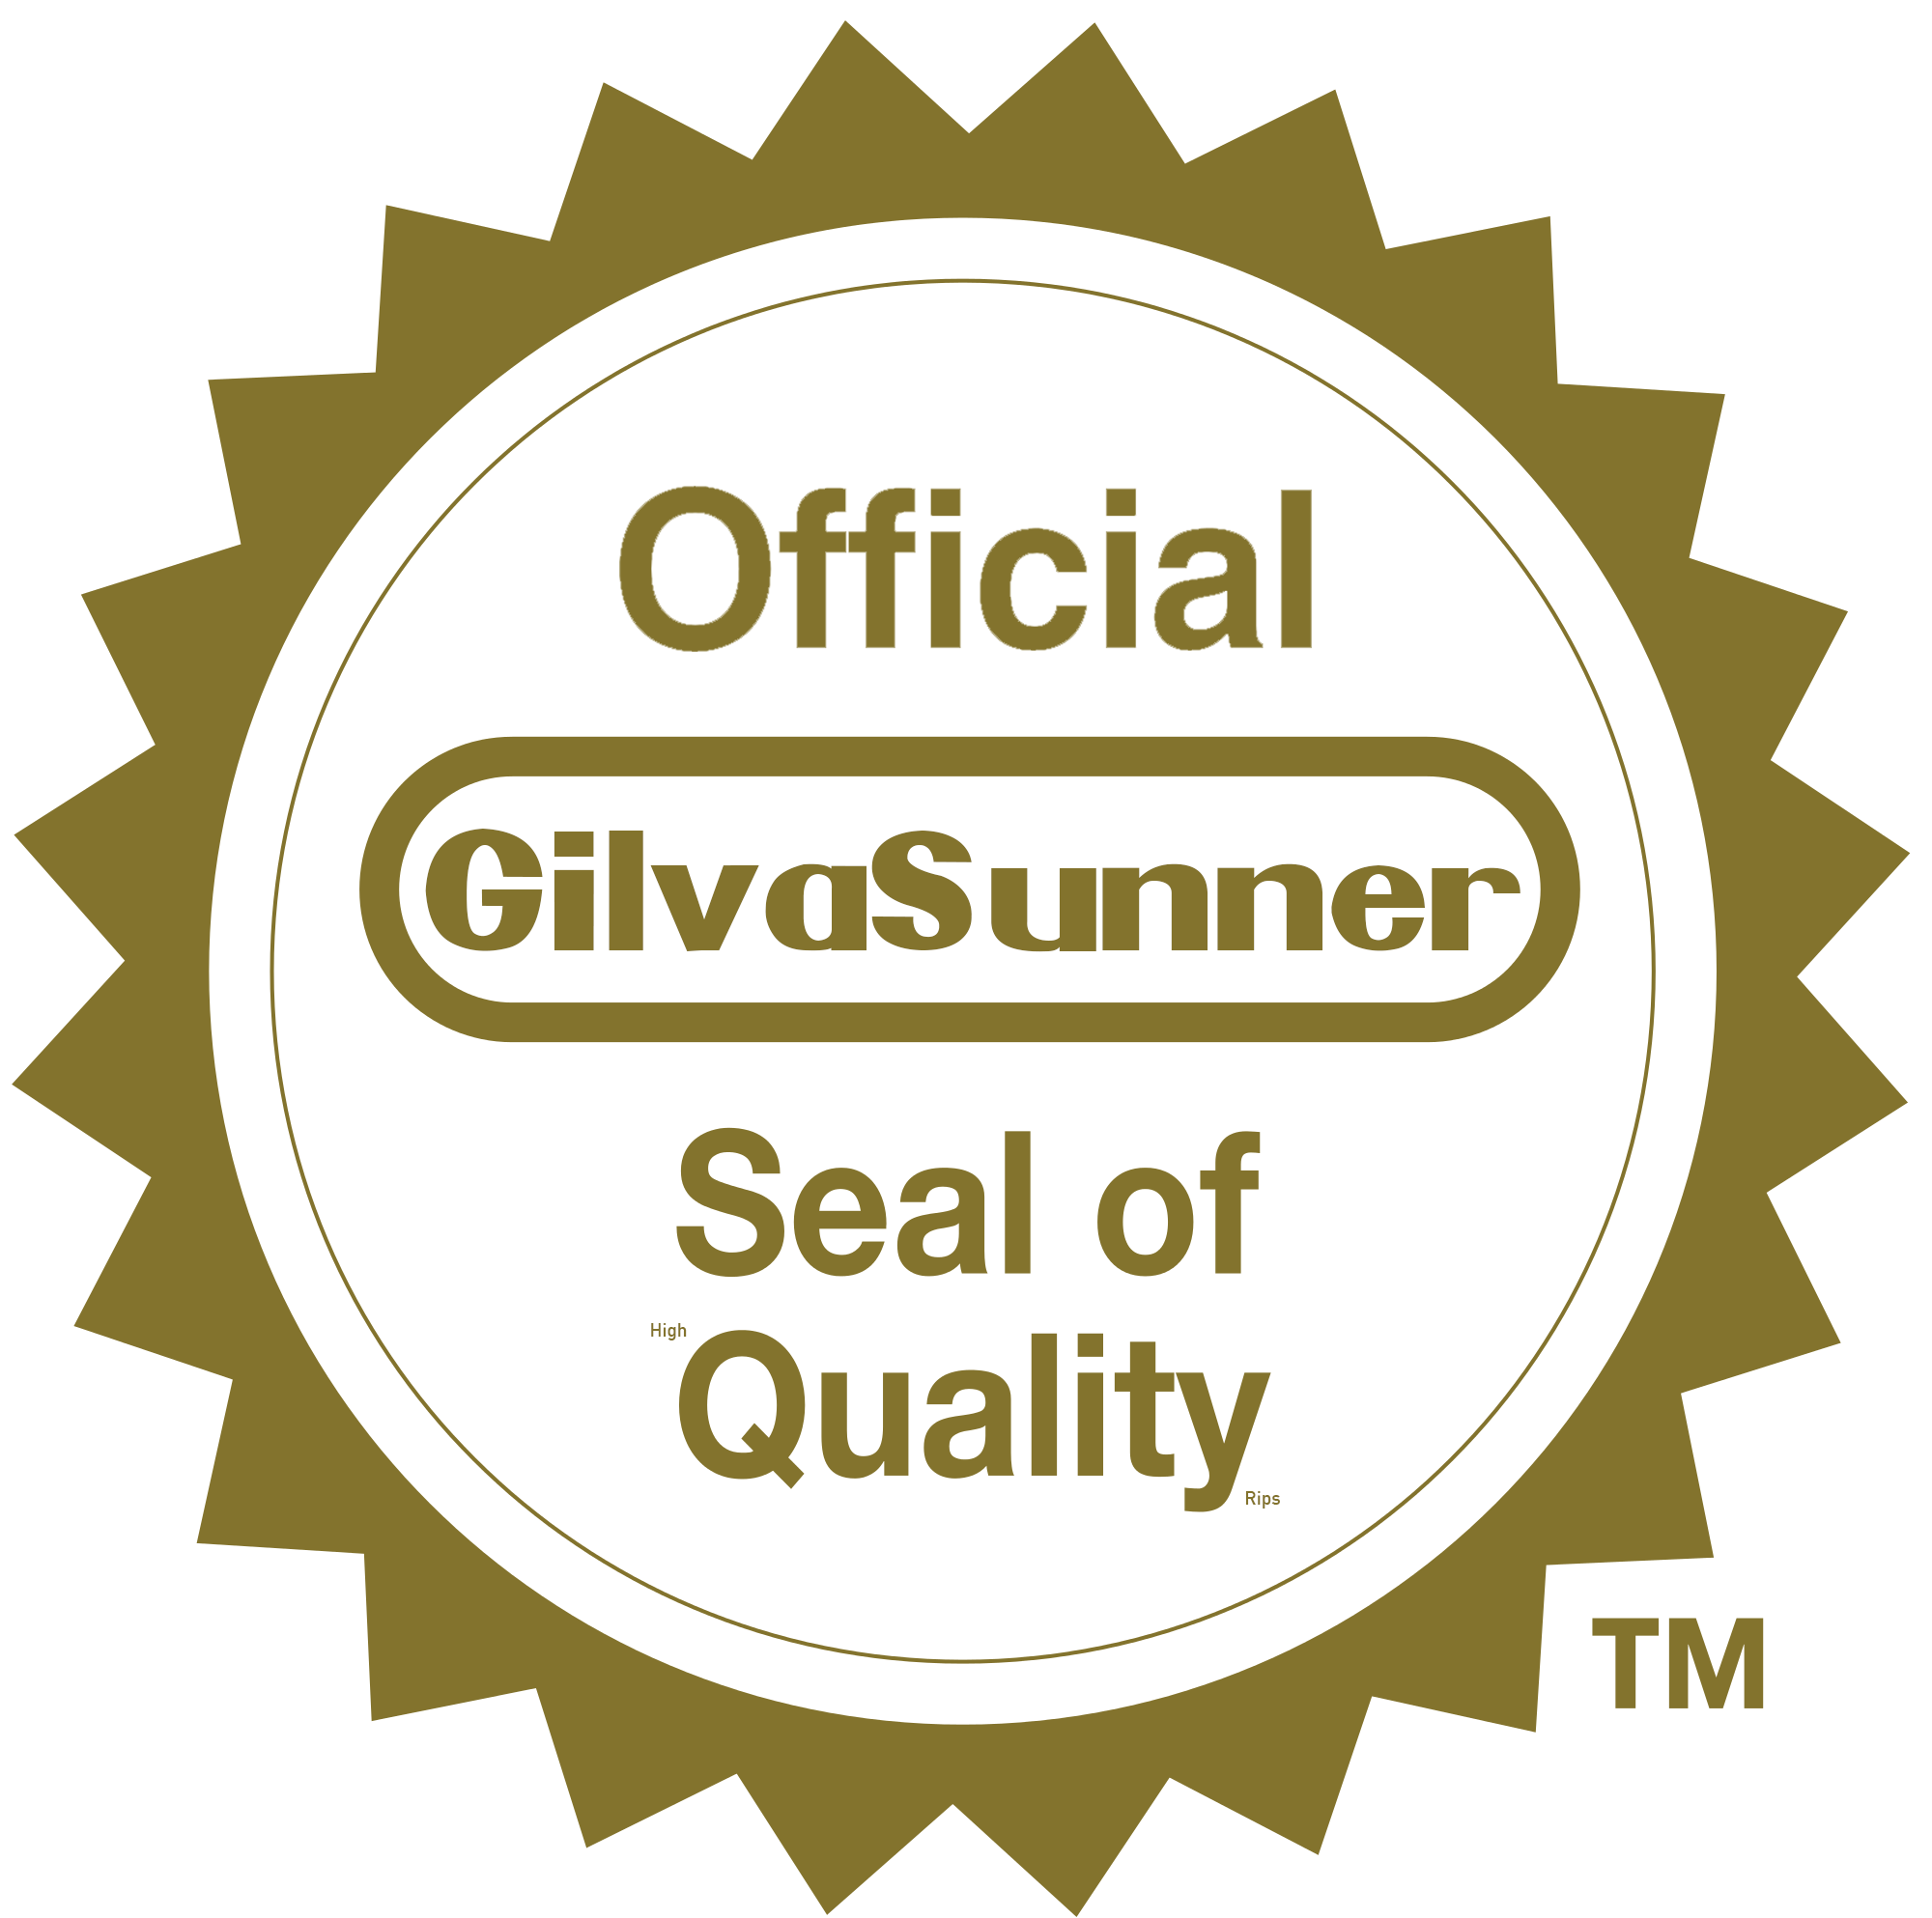 Quality seal png. Image official giivasunner of